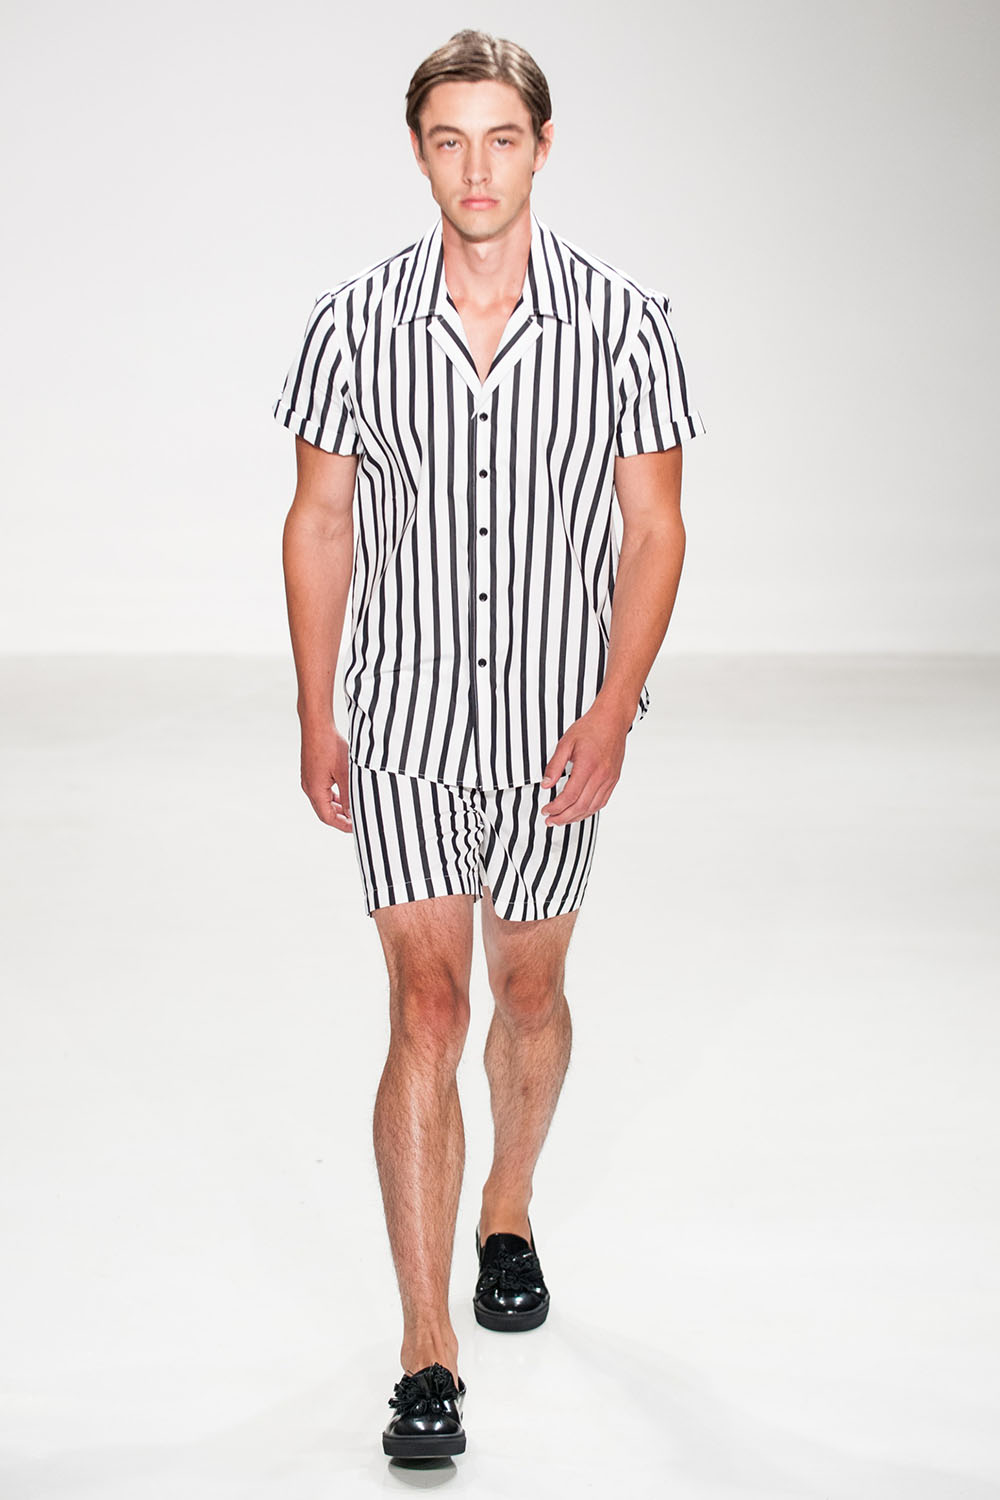 Carlos Campos SS17 Men's Fashion Presentation at New York Fashio